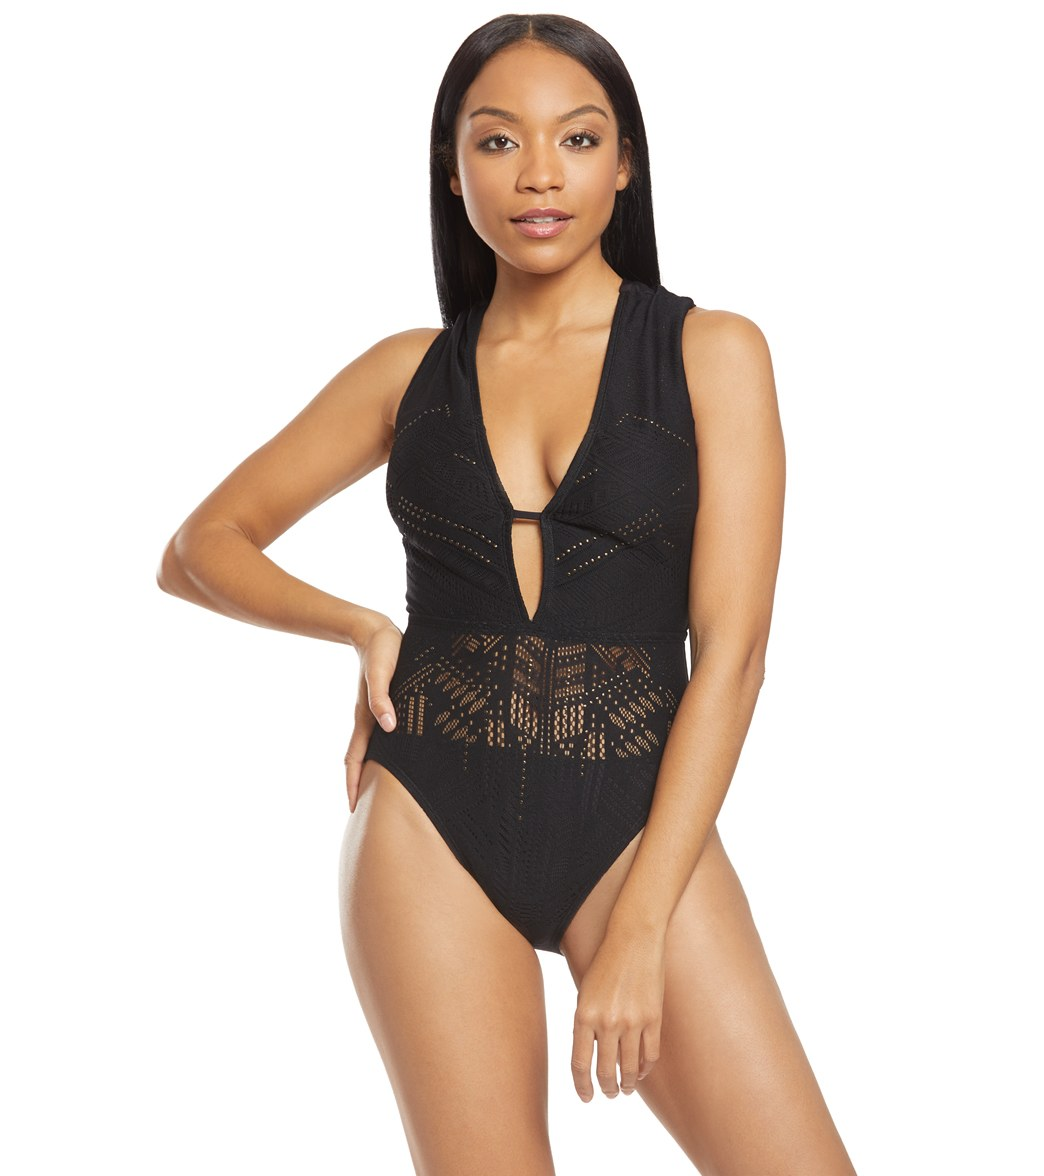 3decb4a50115 Kenneth Cole See You Swoon Plunge Cap Sleeve One Piece Swimsuit at  SwimOutlet.com - Free Shipping